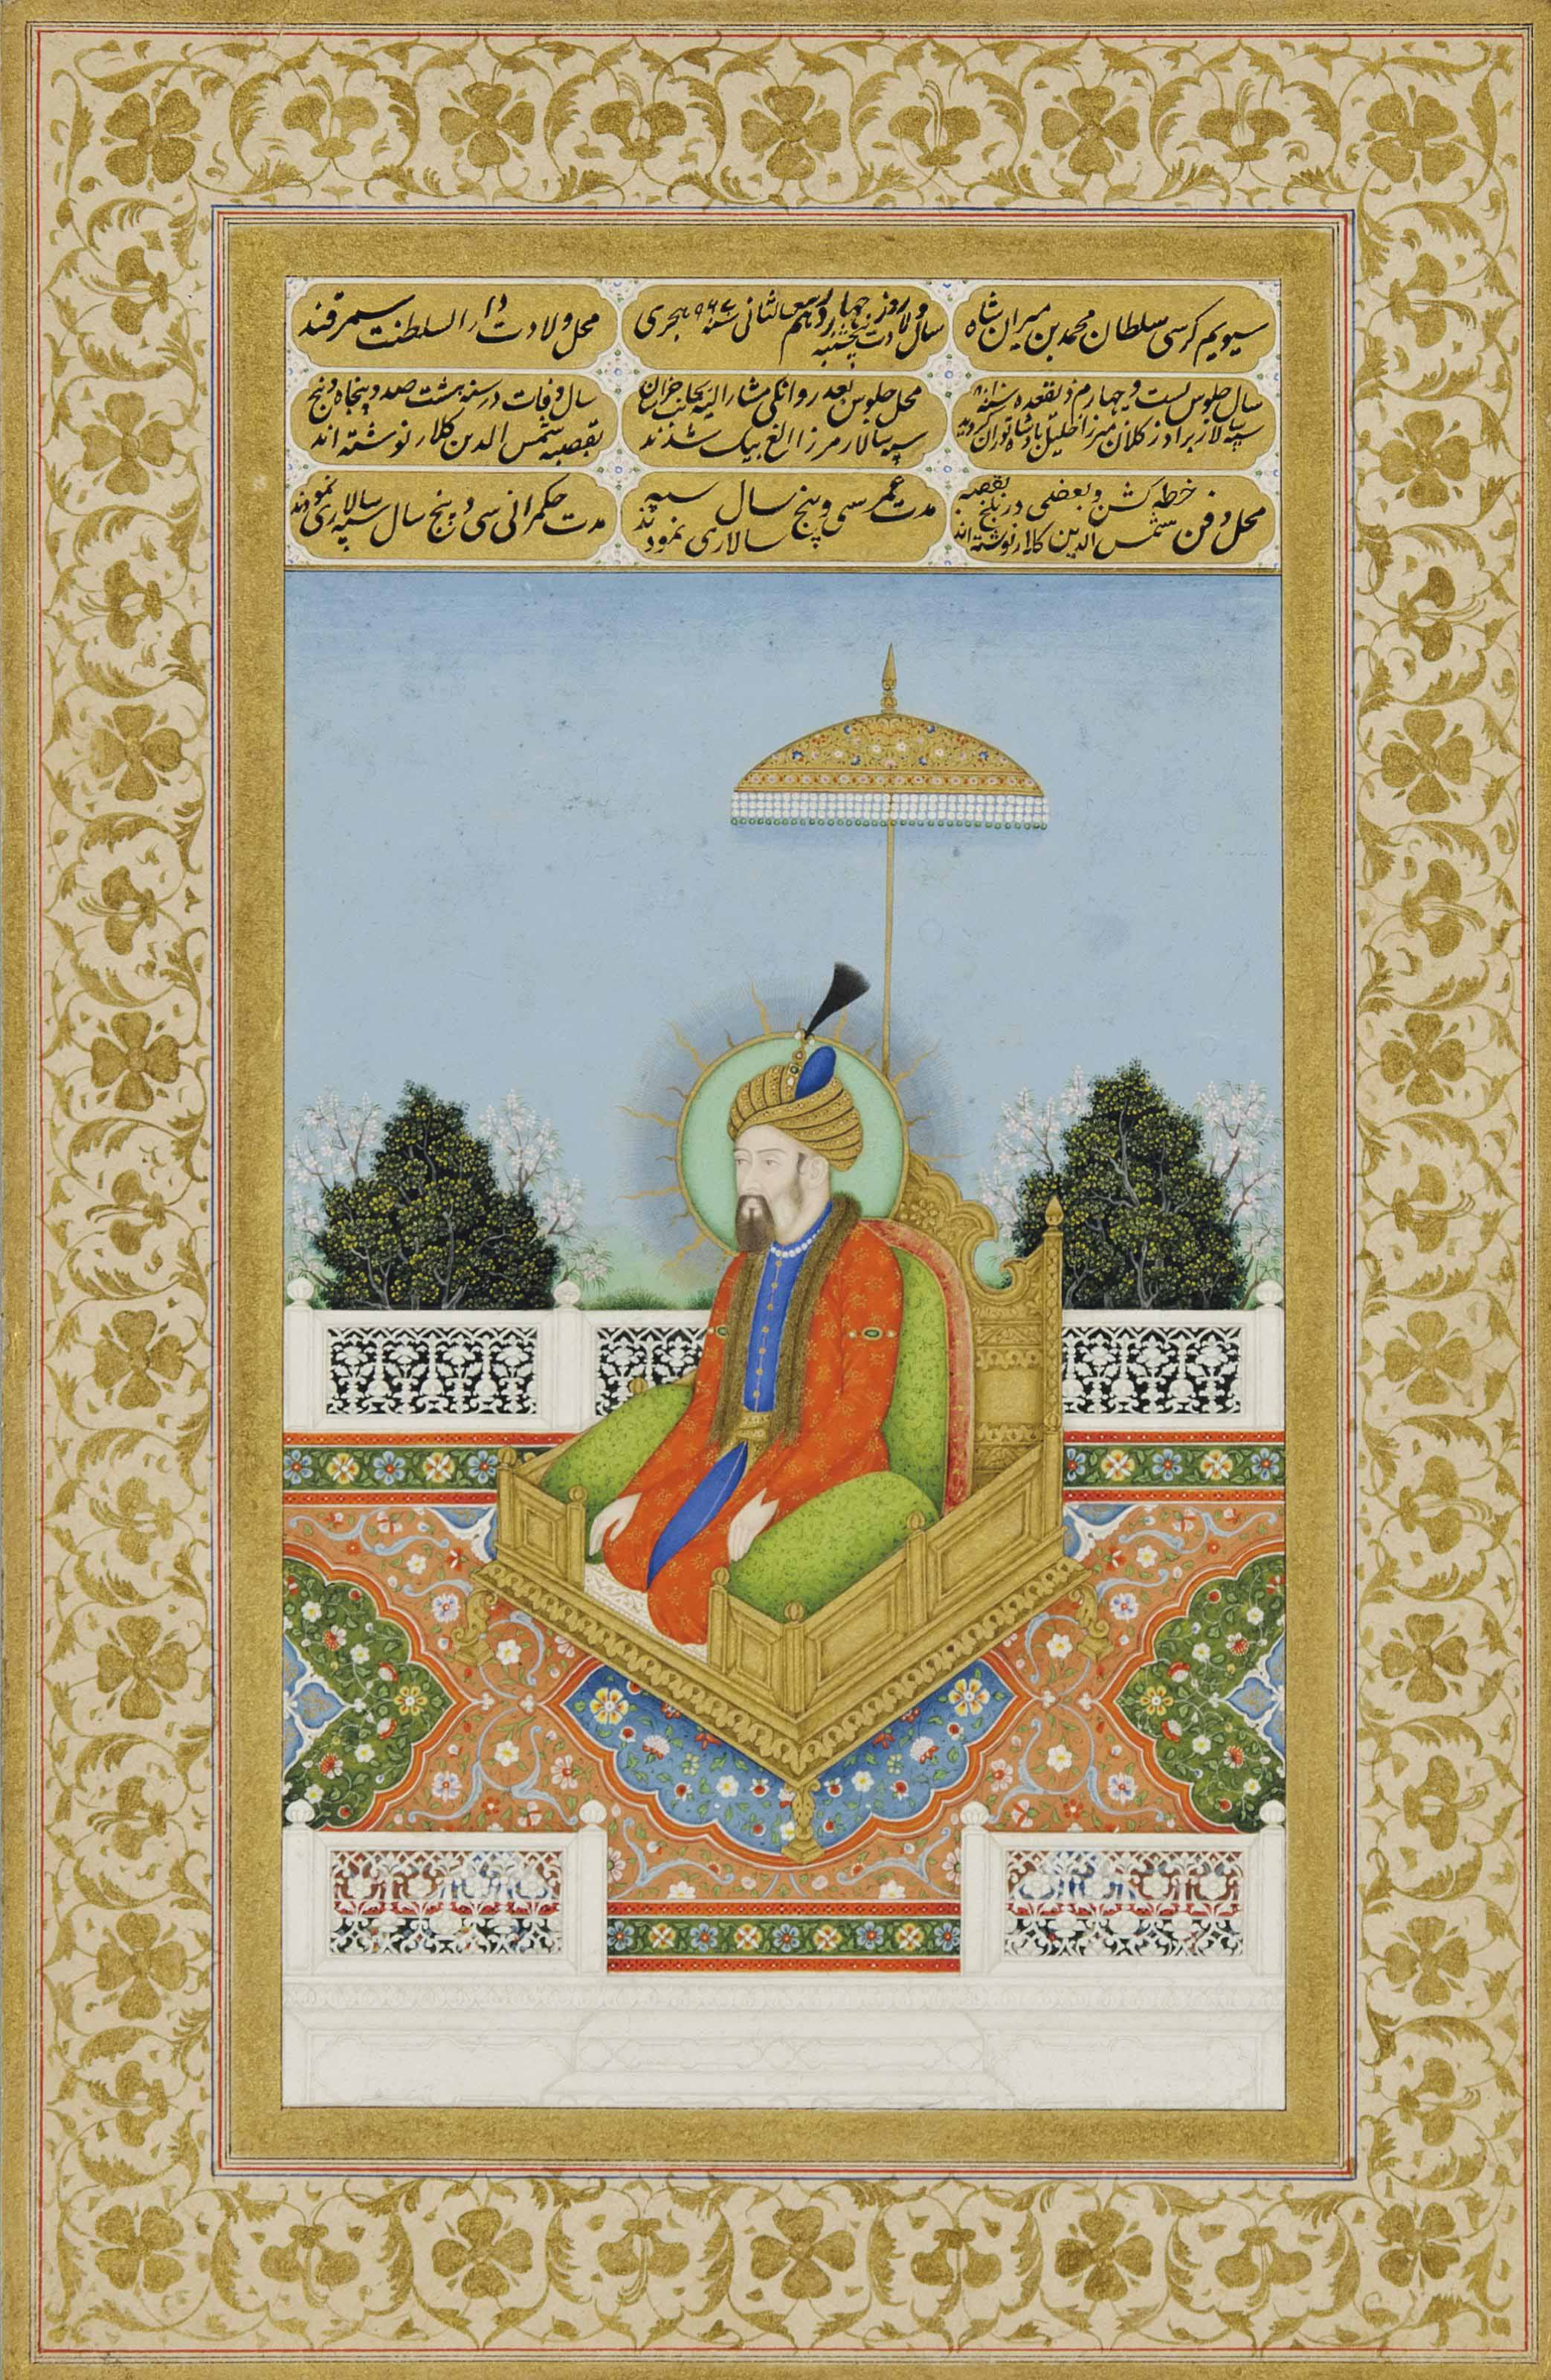 A PORTRAIT OF THE MUGHAL EMPEROR BABUR (R. 1526-30) | DELHI, NORTH ...